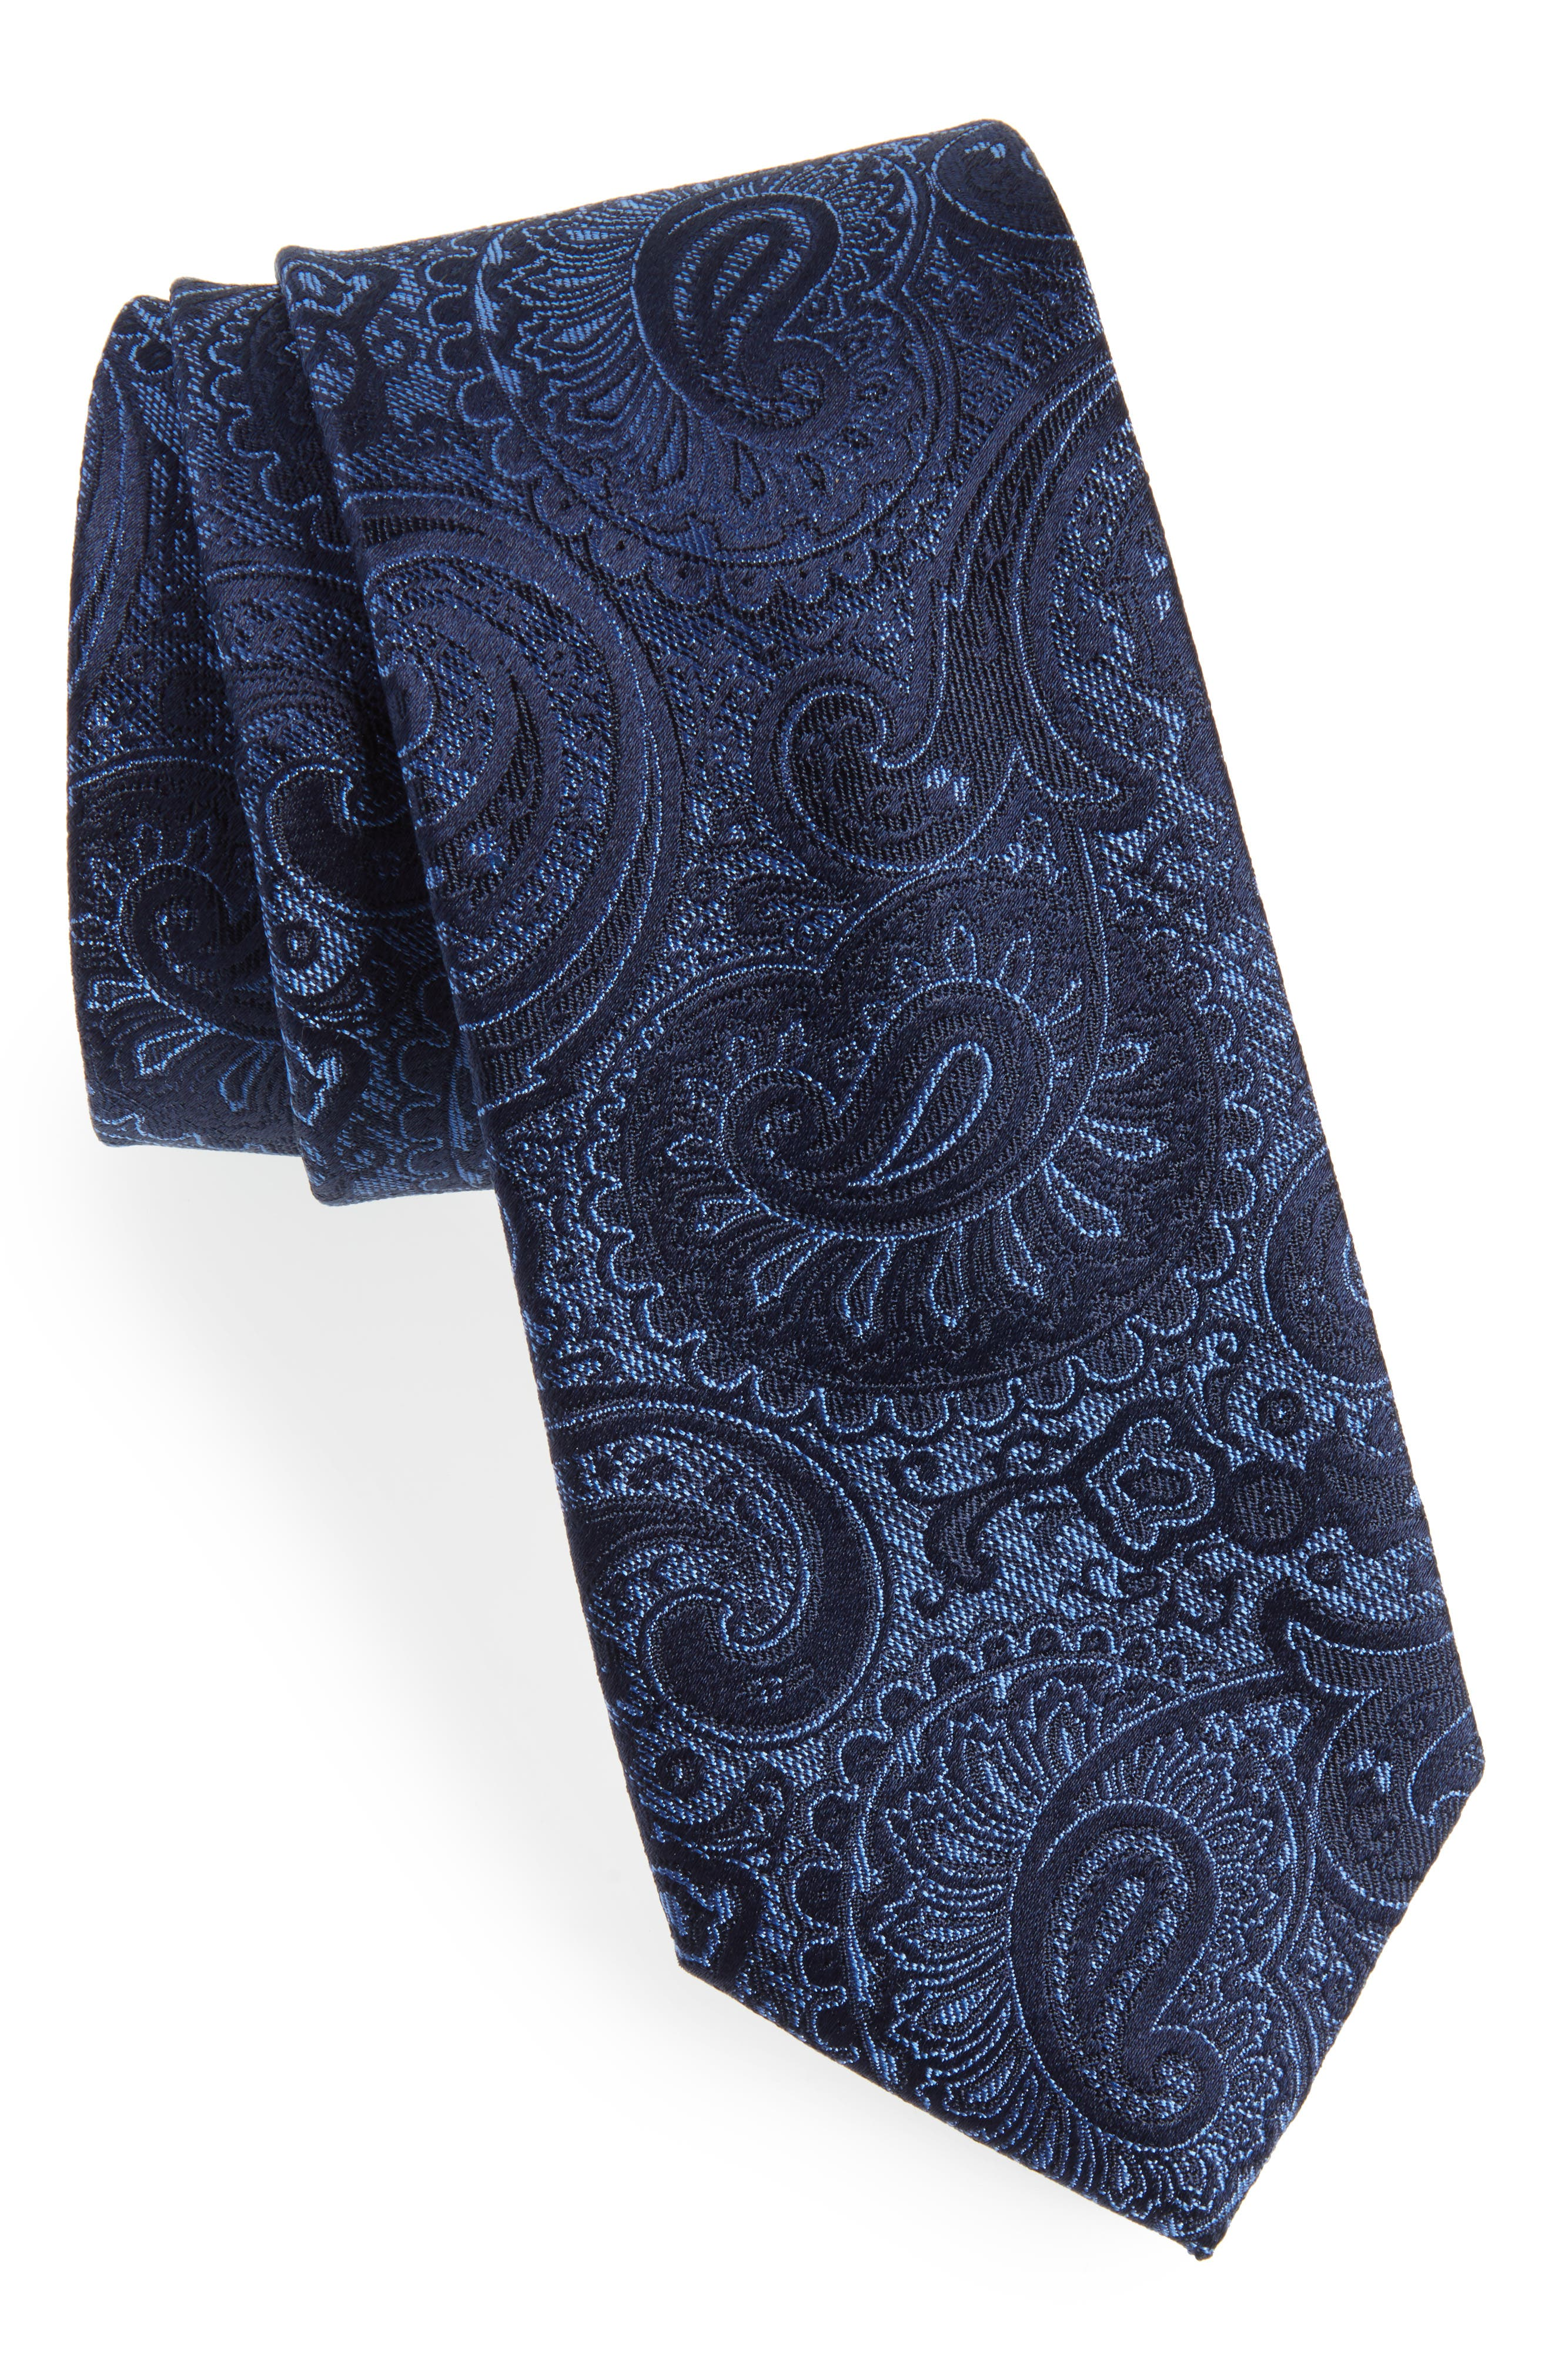 Berwyn Paisley Silk Tie,                         Main,                         color, 410